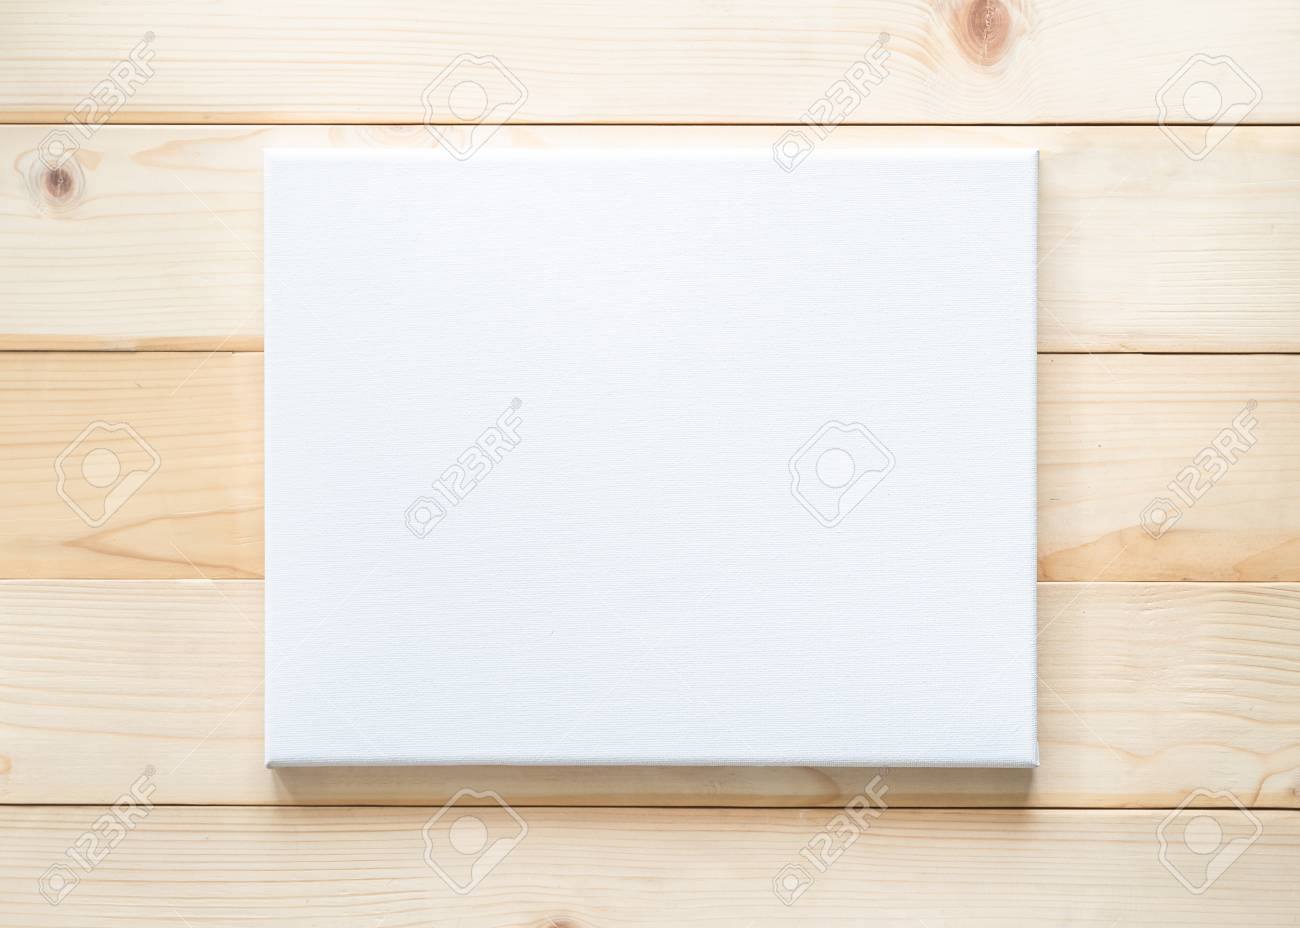 Blank Canvas Frame Mockup Rectangular Size On White Wood Wall